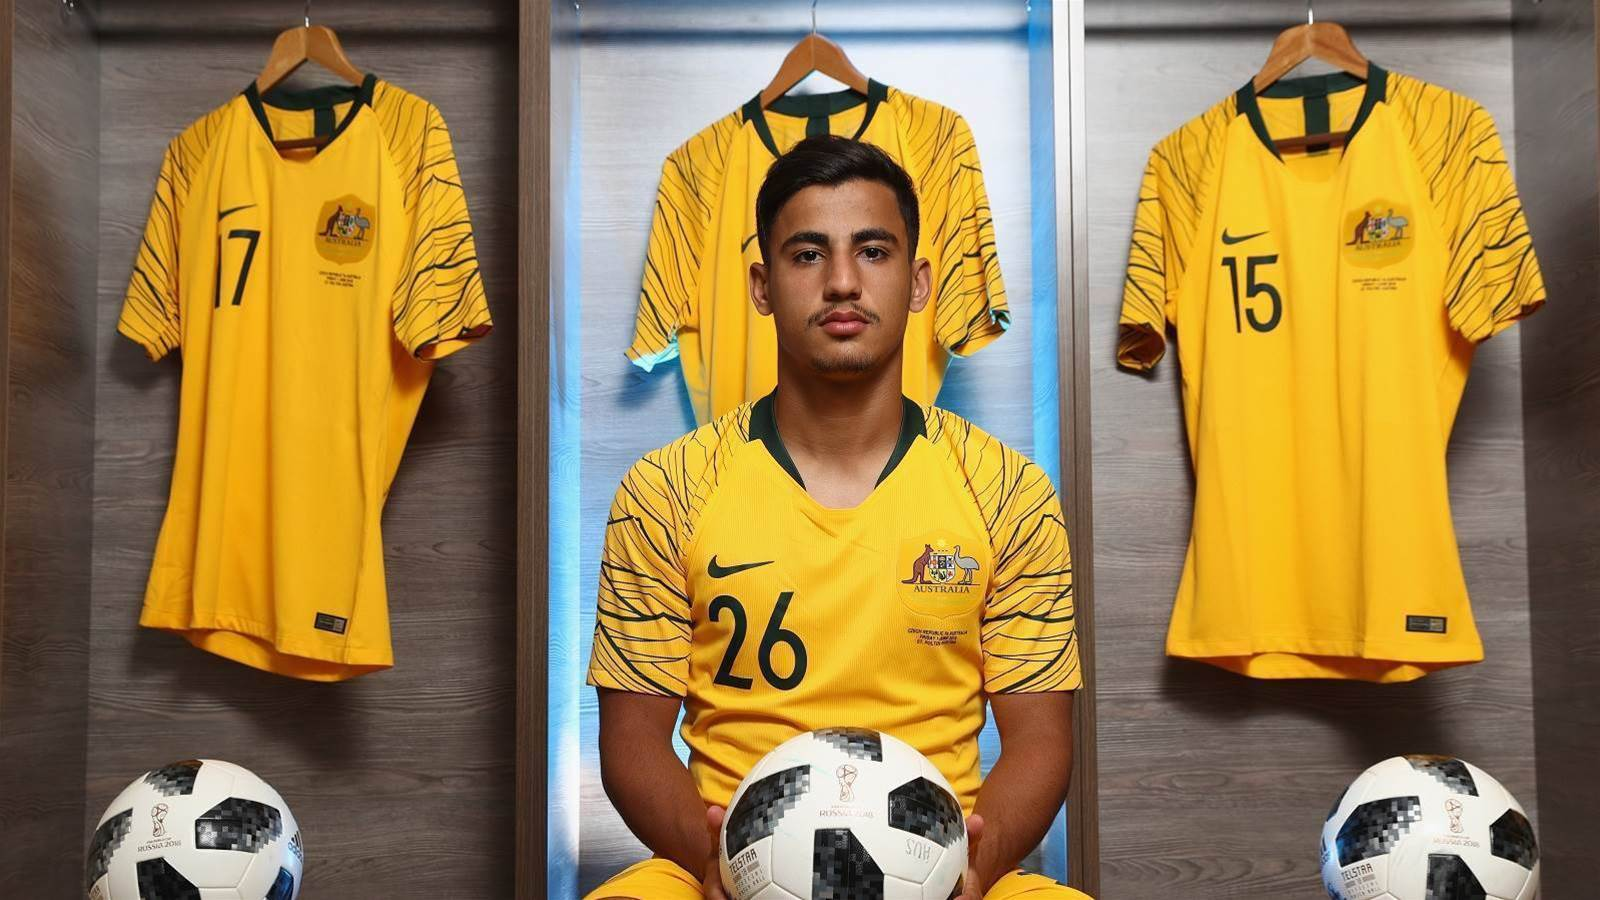 Celtic boss Rodgers compares Arzani hype to Kewell